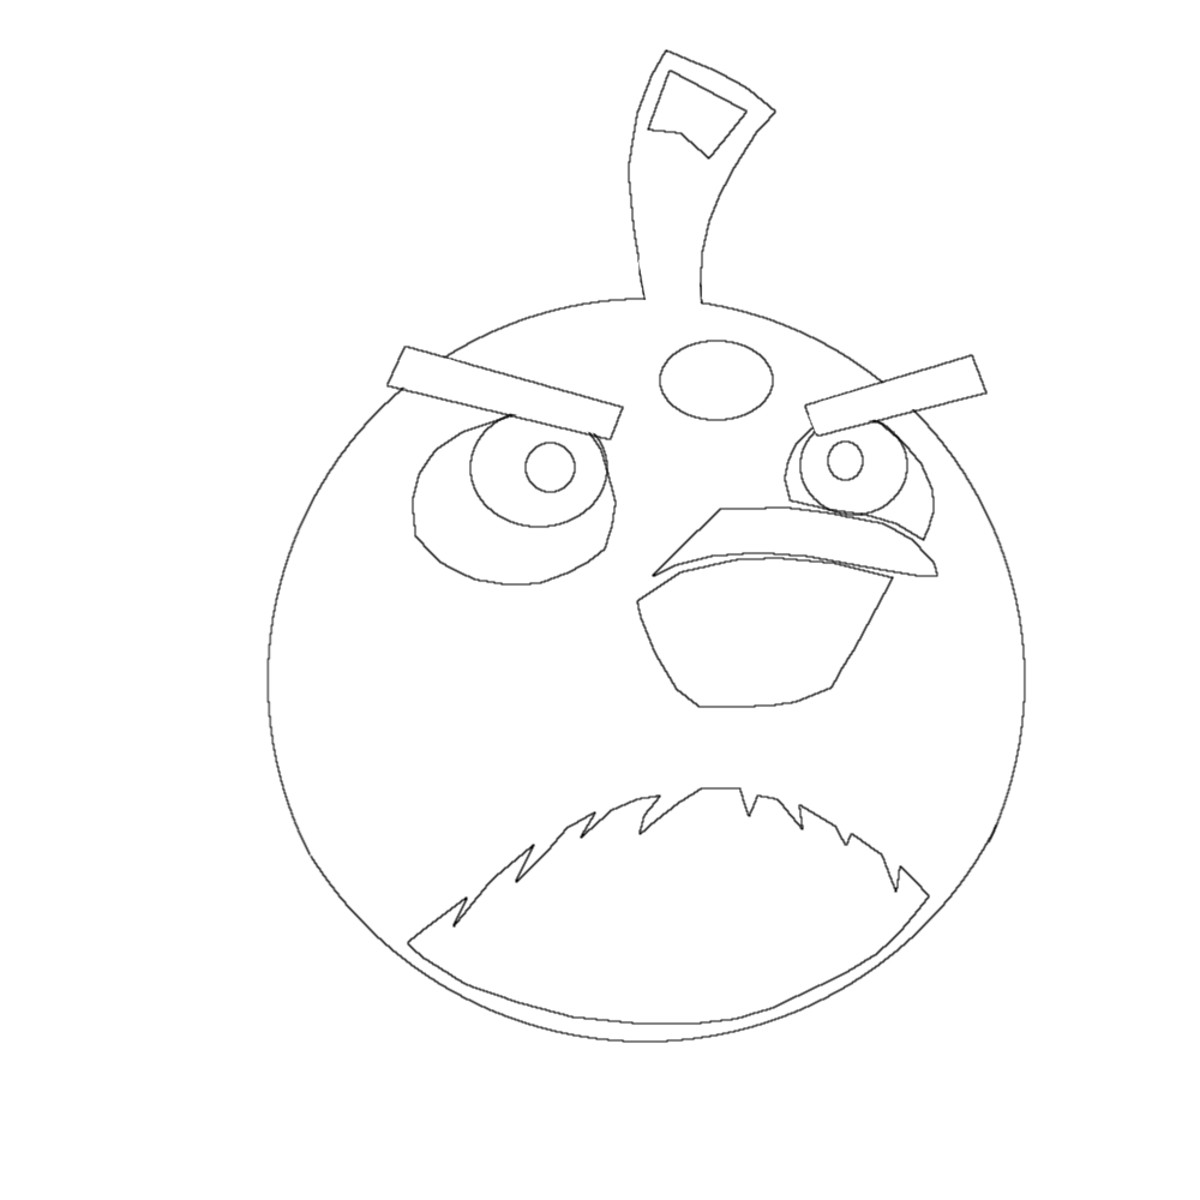 Angry Black Bird for tracing, printing for coloring in, useful when you have too many other things to do anyway.